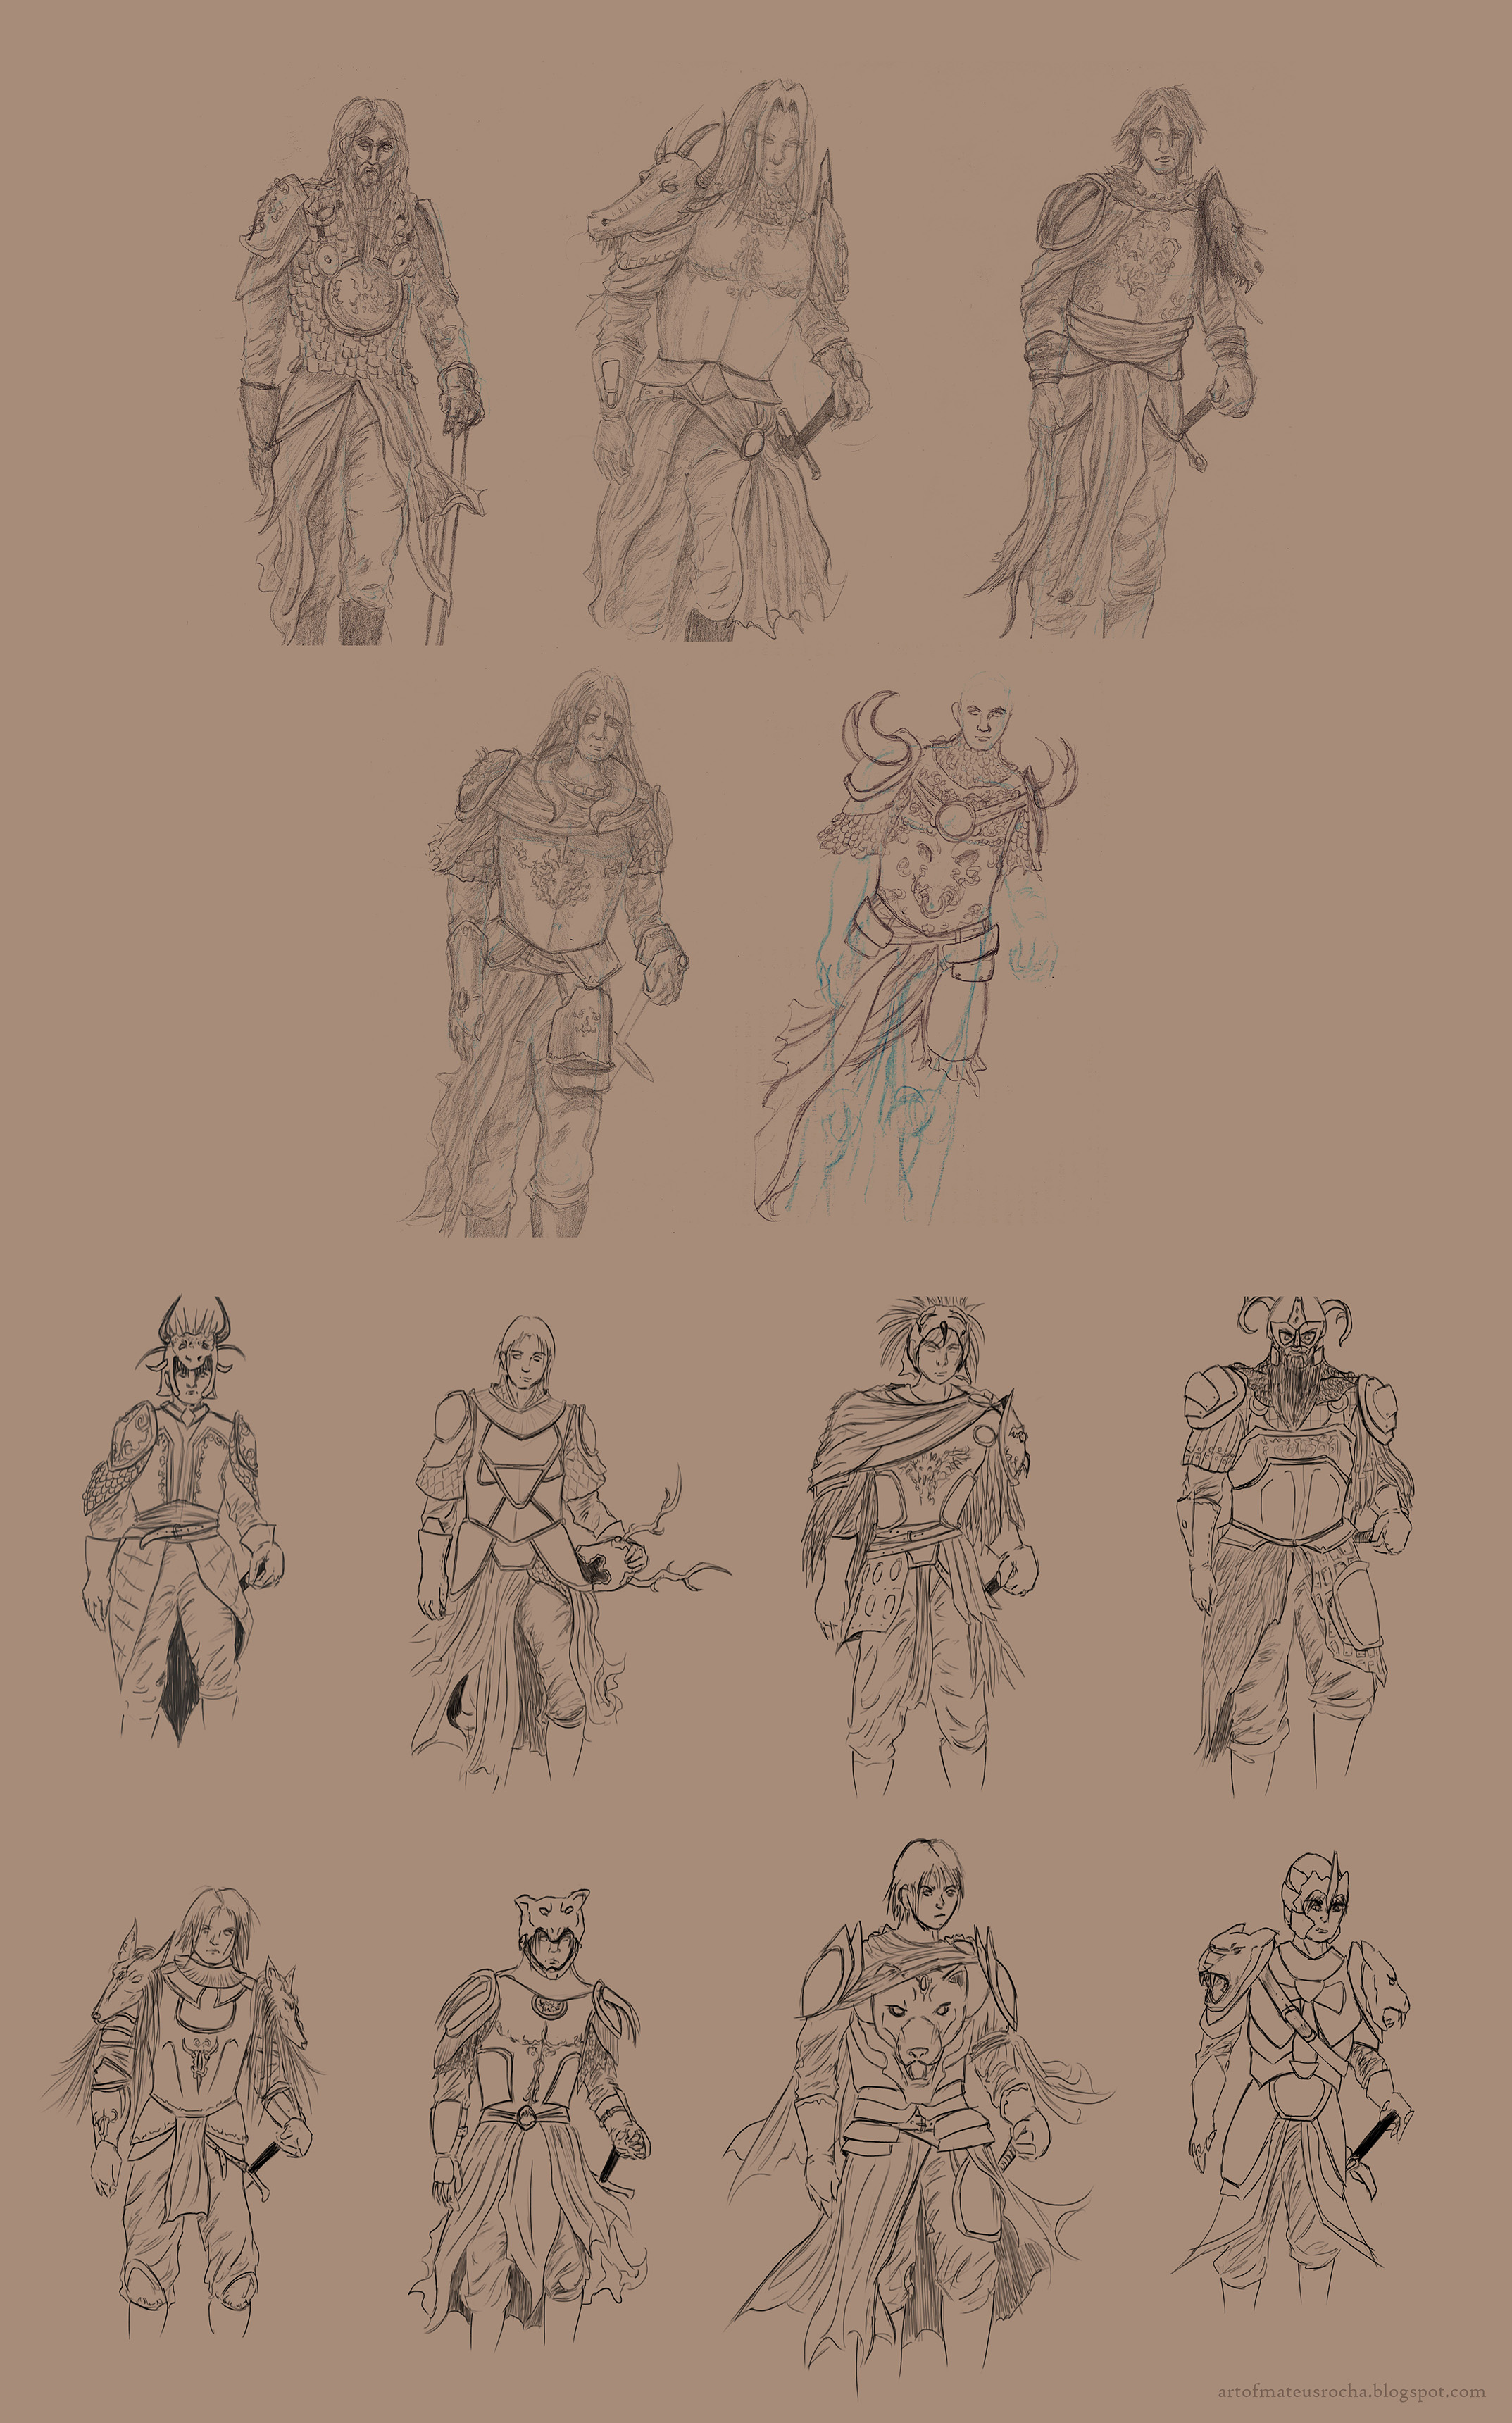 [Image: 23_03_13_all_armor_concepts_by_mateusrocha-d5z1xcx.jpg]